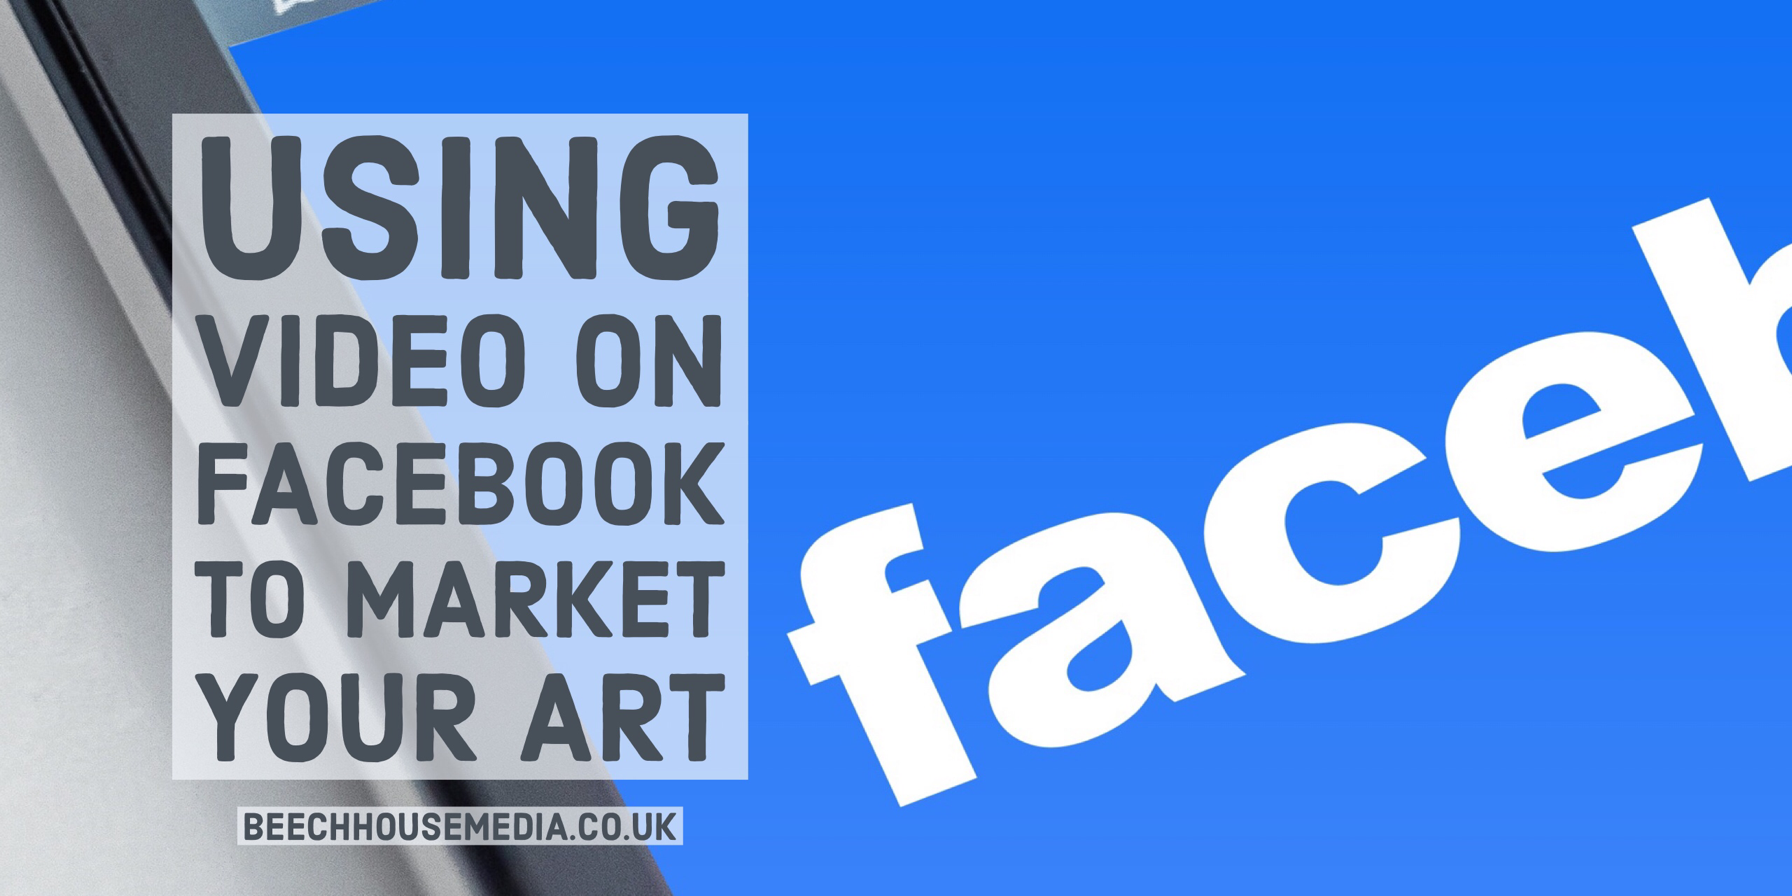 using video on Facebook to Market Your Art